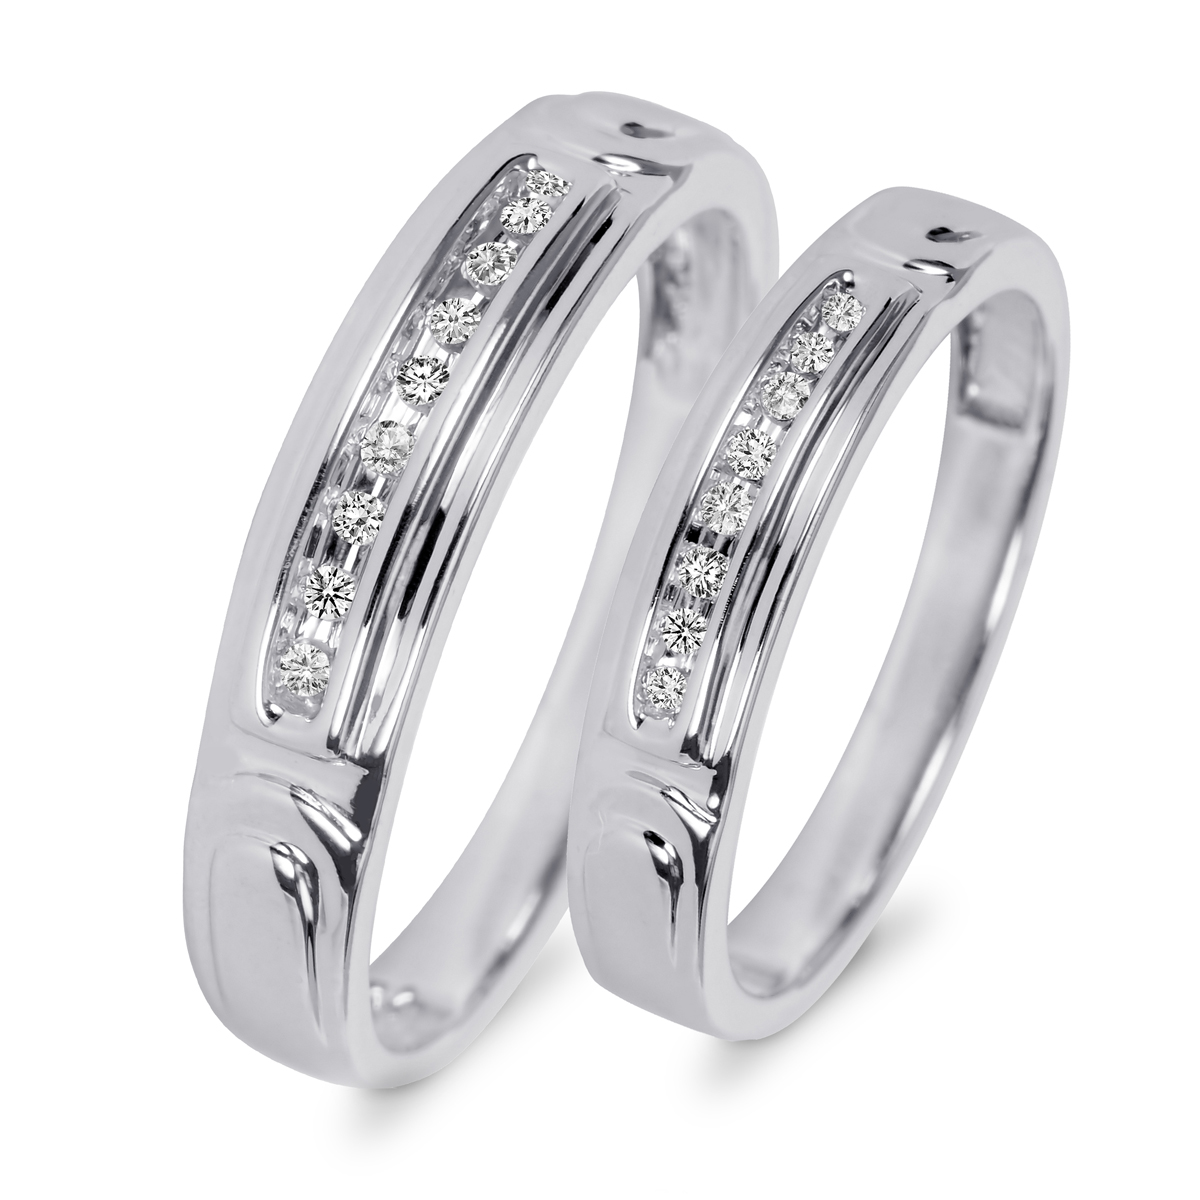 T.W. Diamond His And Hers Wedding Rings 10K White Gold